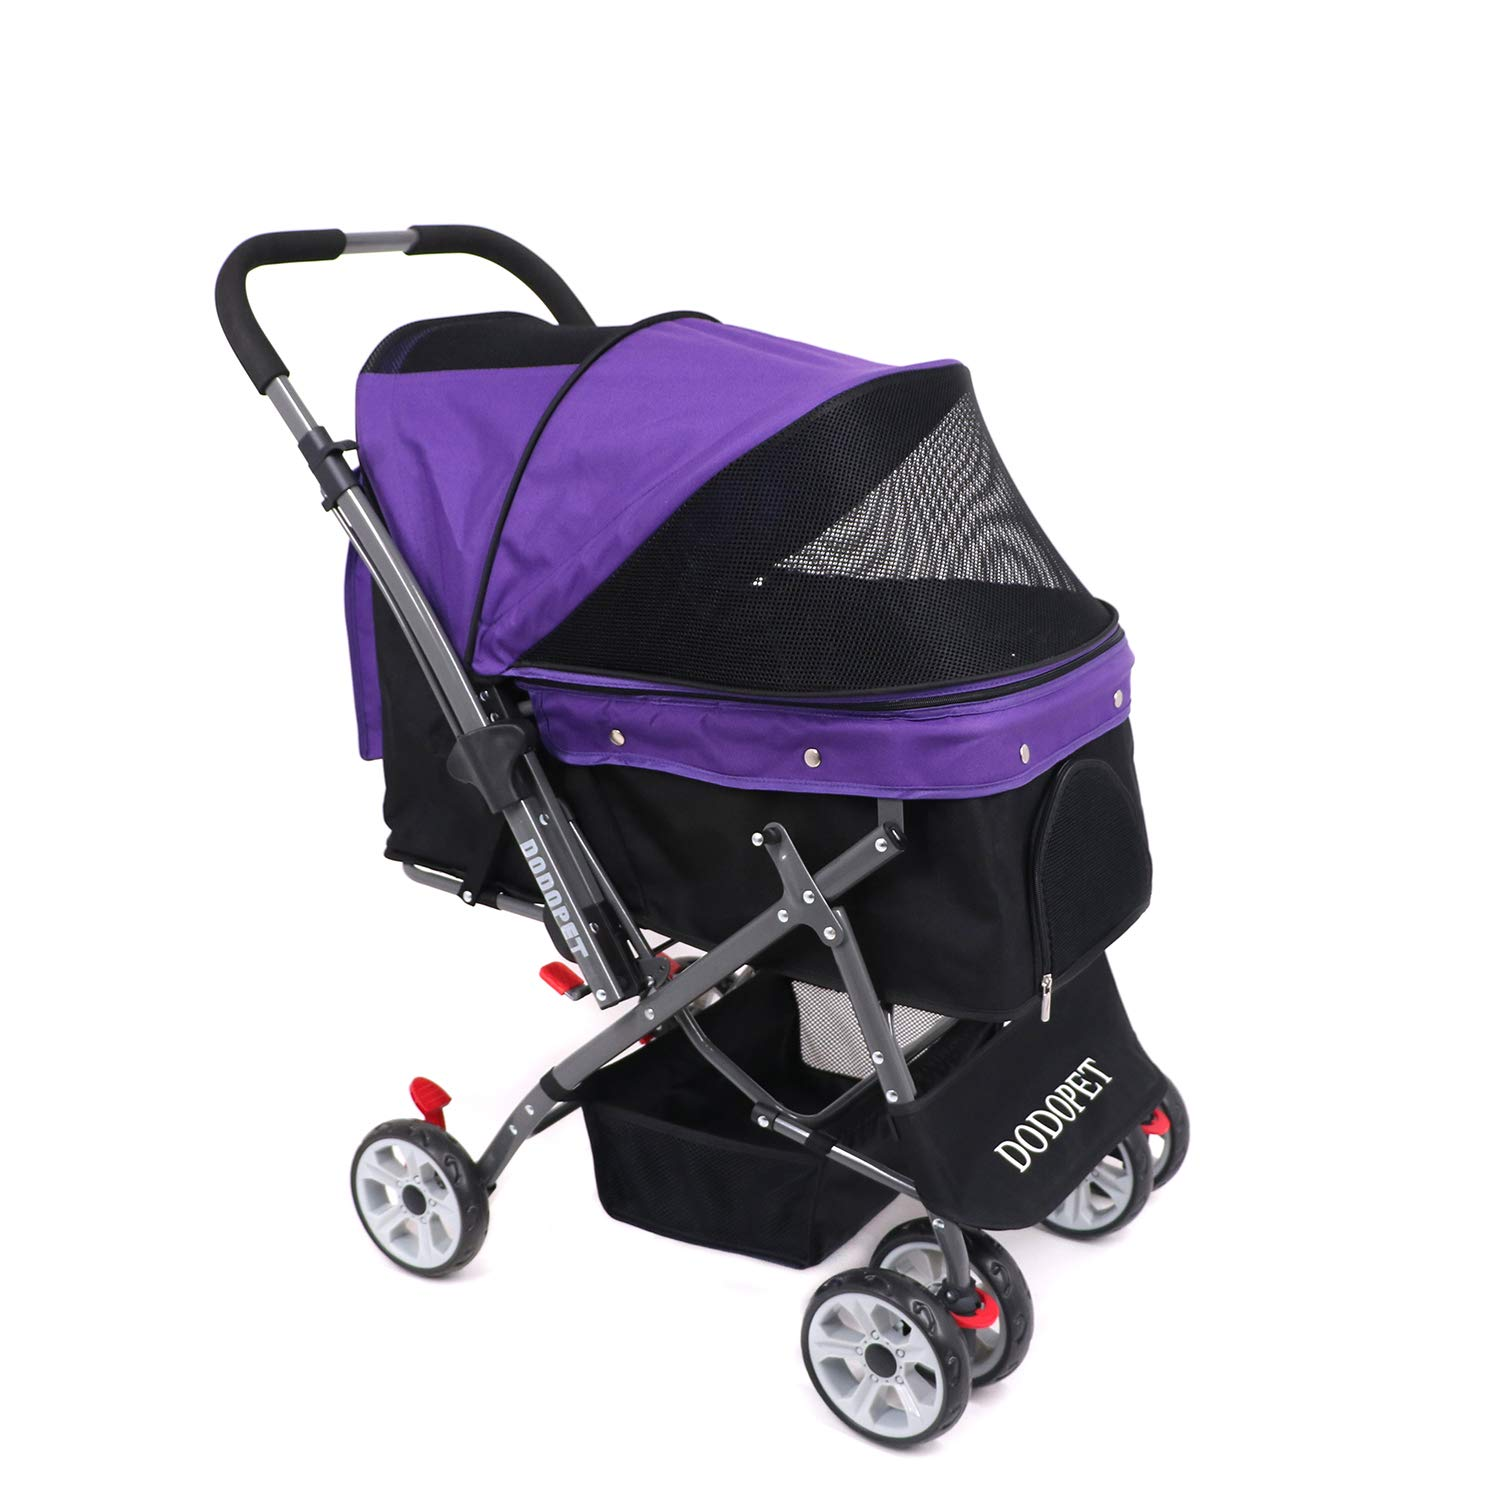 DODOPET - Dog/Cat/Pet Stroller, 4 Wheel Dog Cage Stroller, Reversible Handle Bar, Pet Travel Folding Carrier, Strolling Cart, Strong and Stable, for Medium Pets Up to 50 lbs, Two Color(Purple)